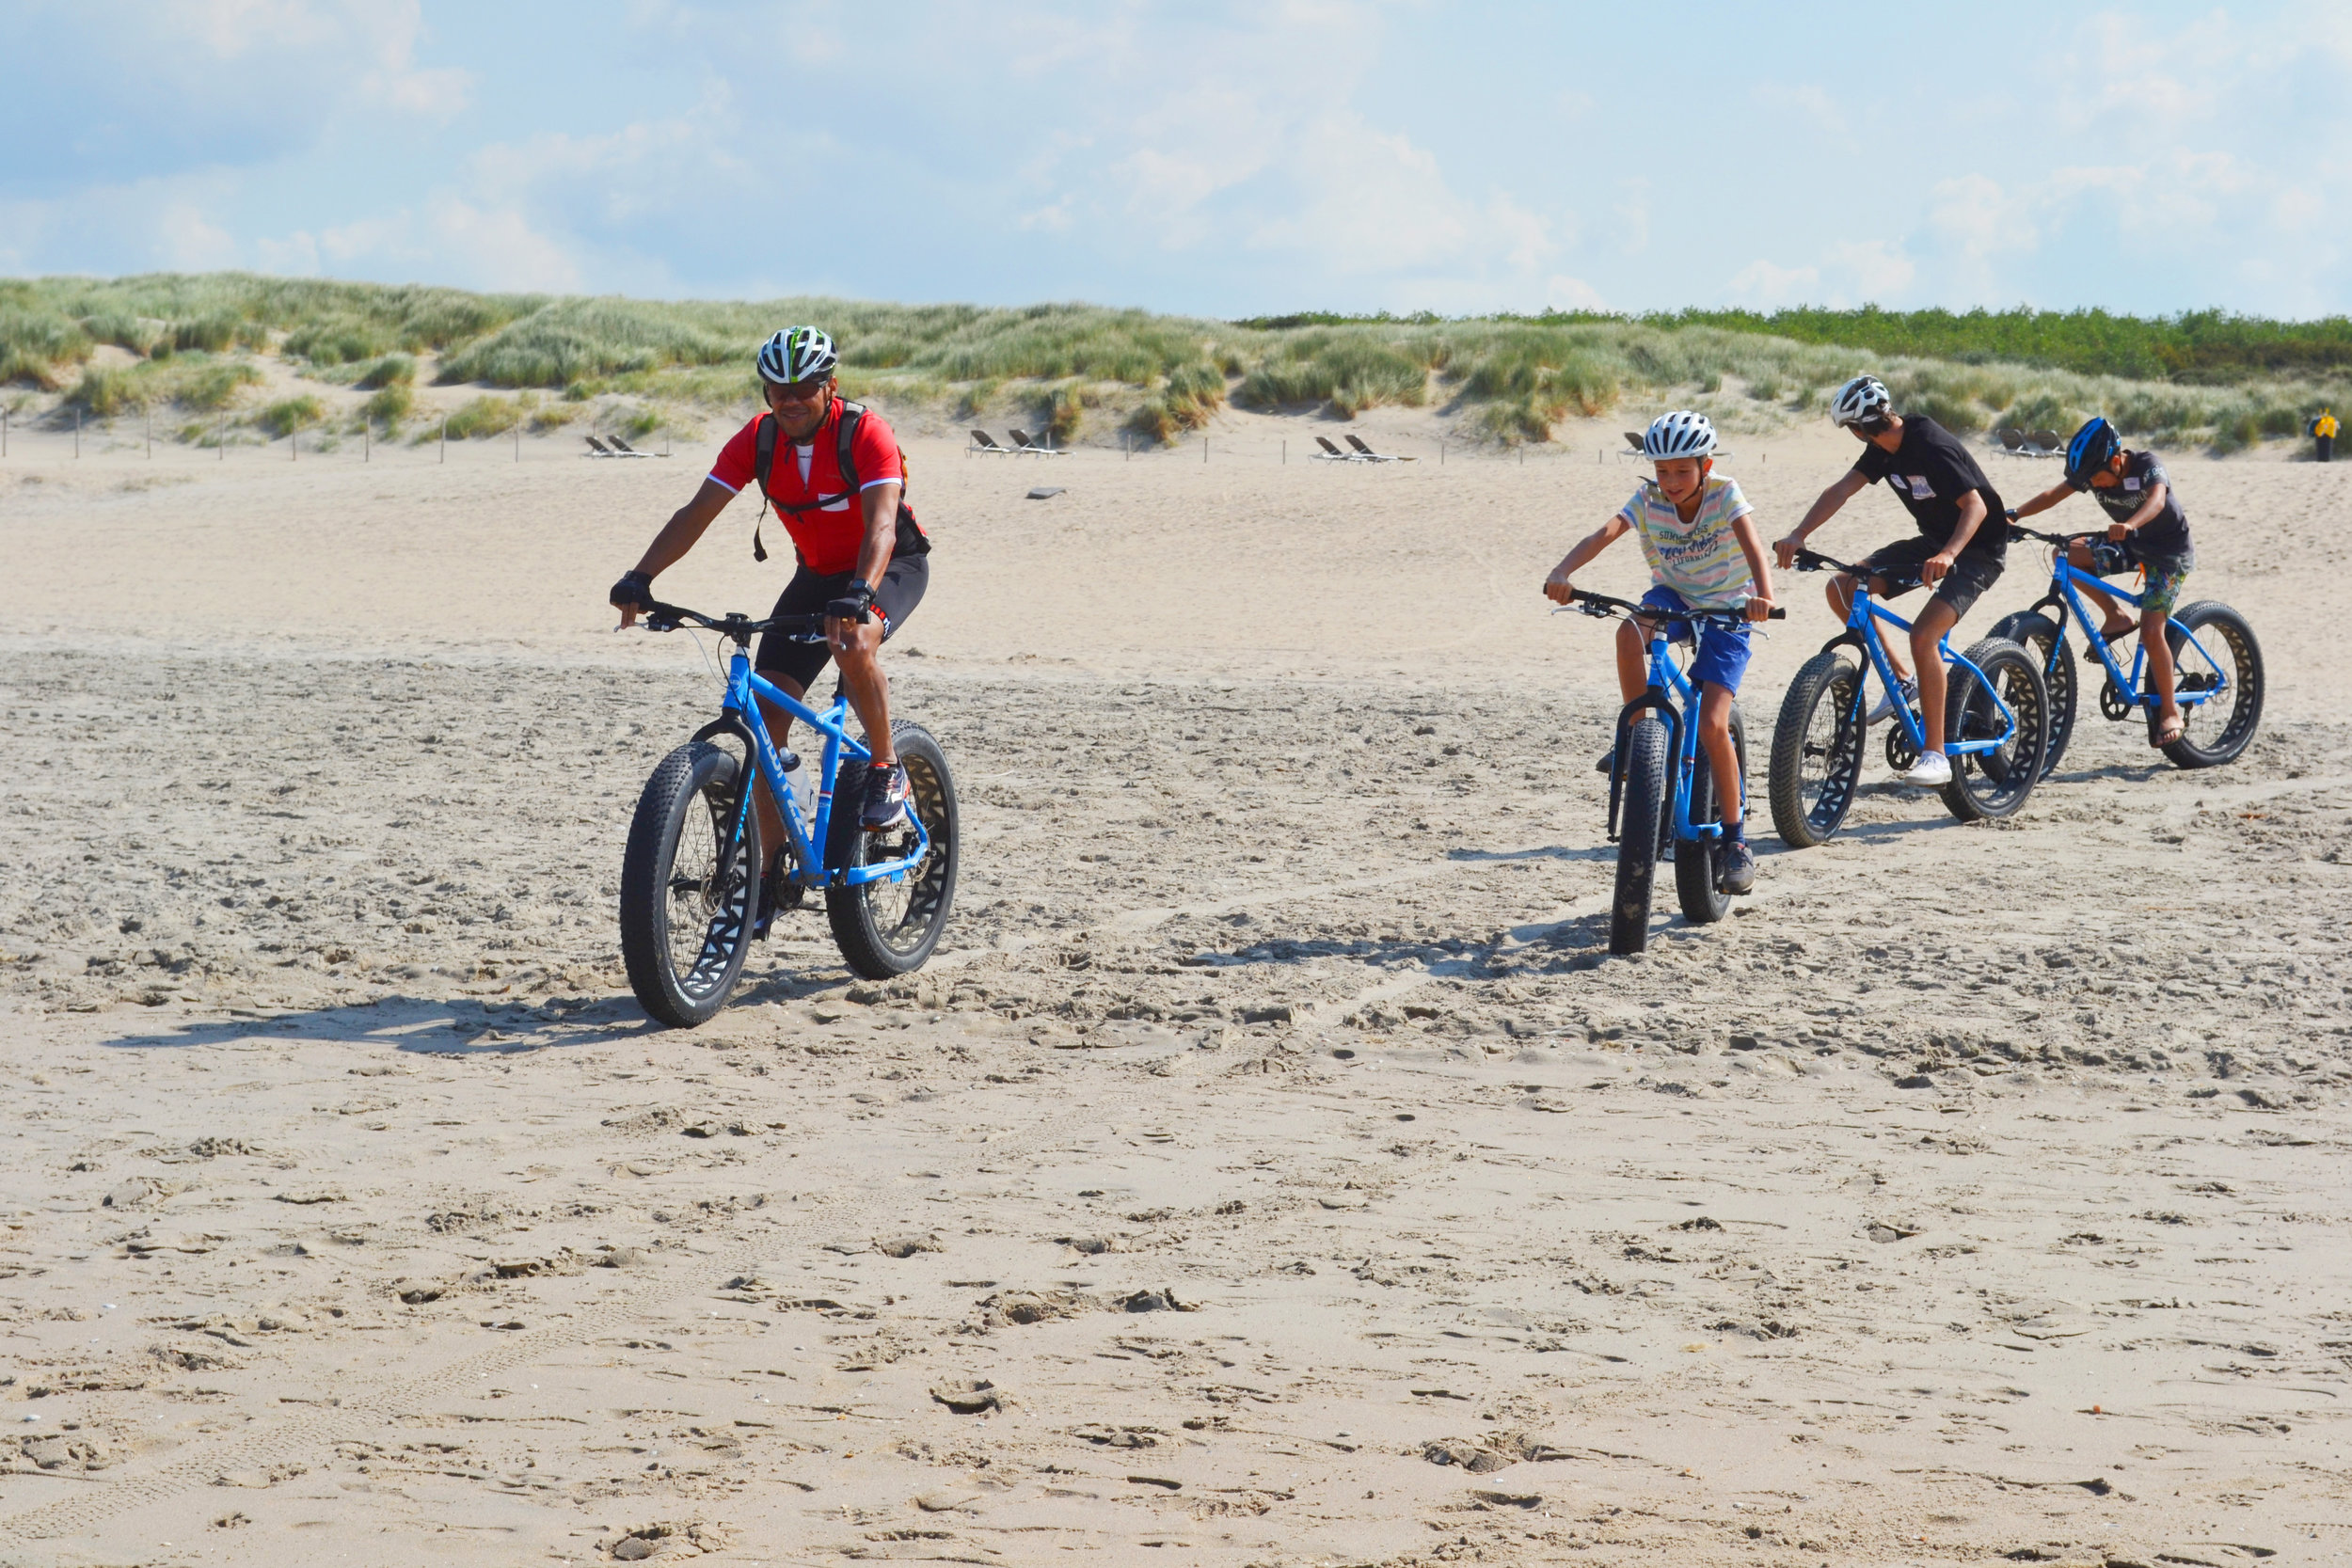 Marco, one of our board members, led a beach-biking session with kids